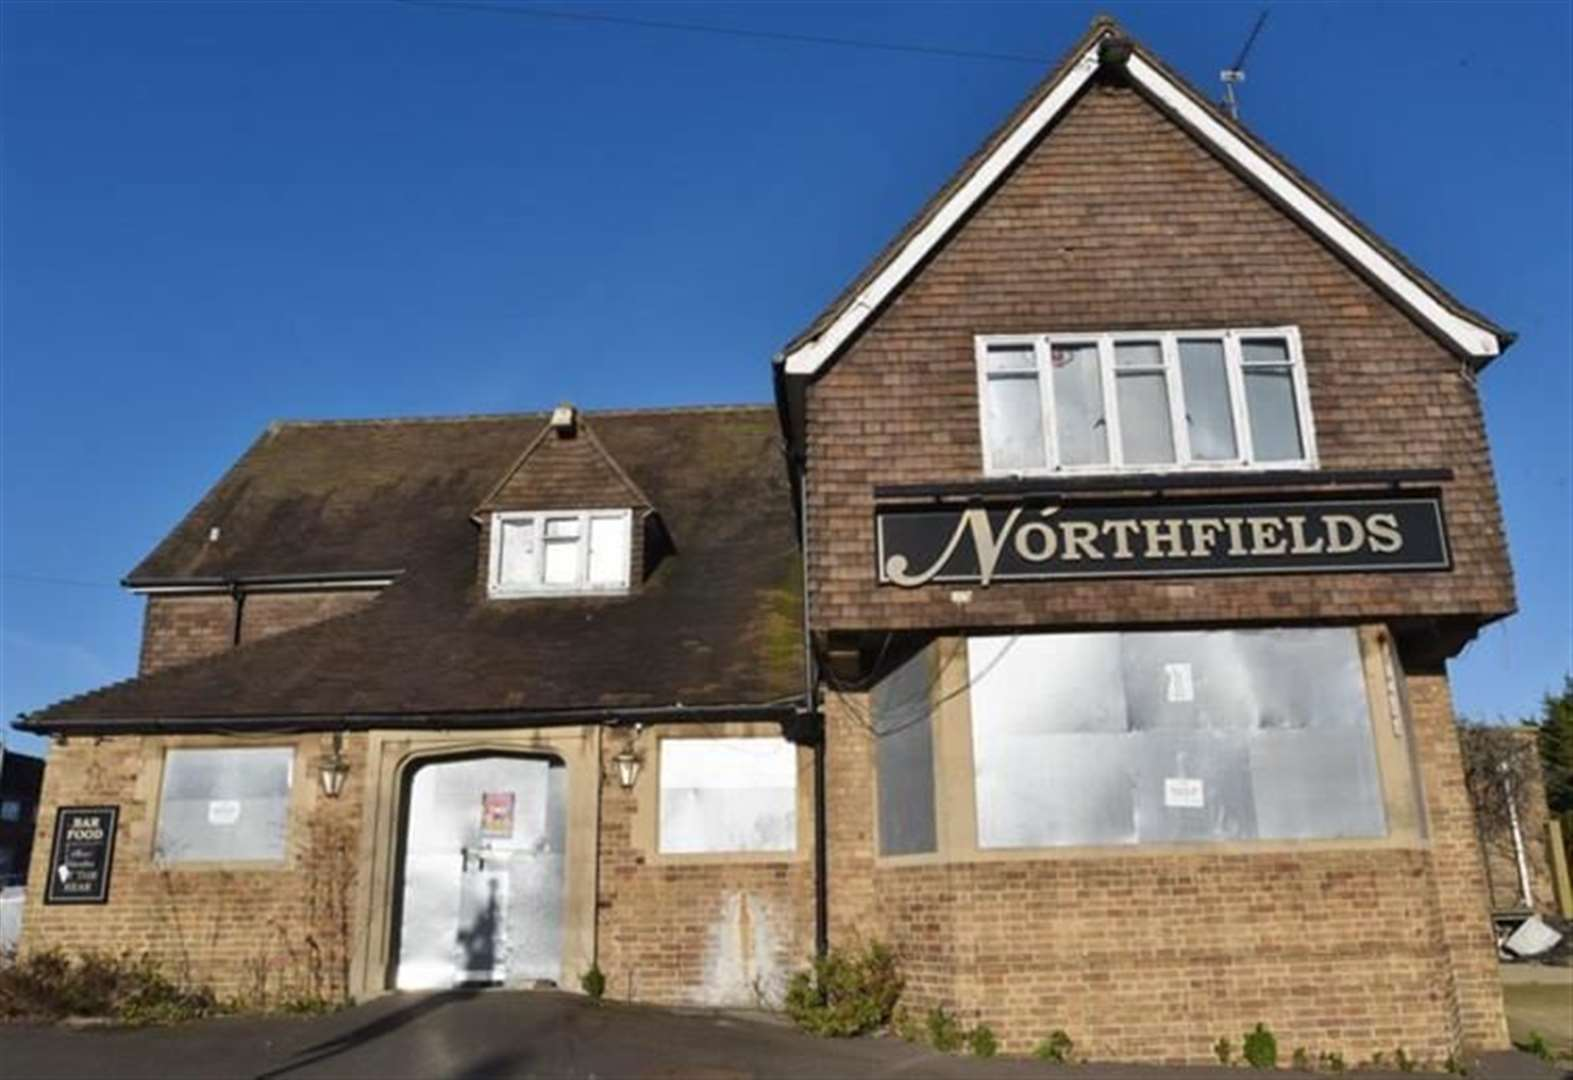 Stamford's Northfields pub set to become shop by 'year end'